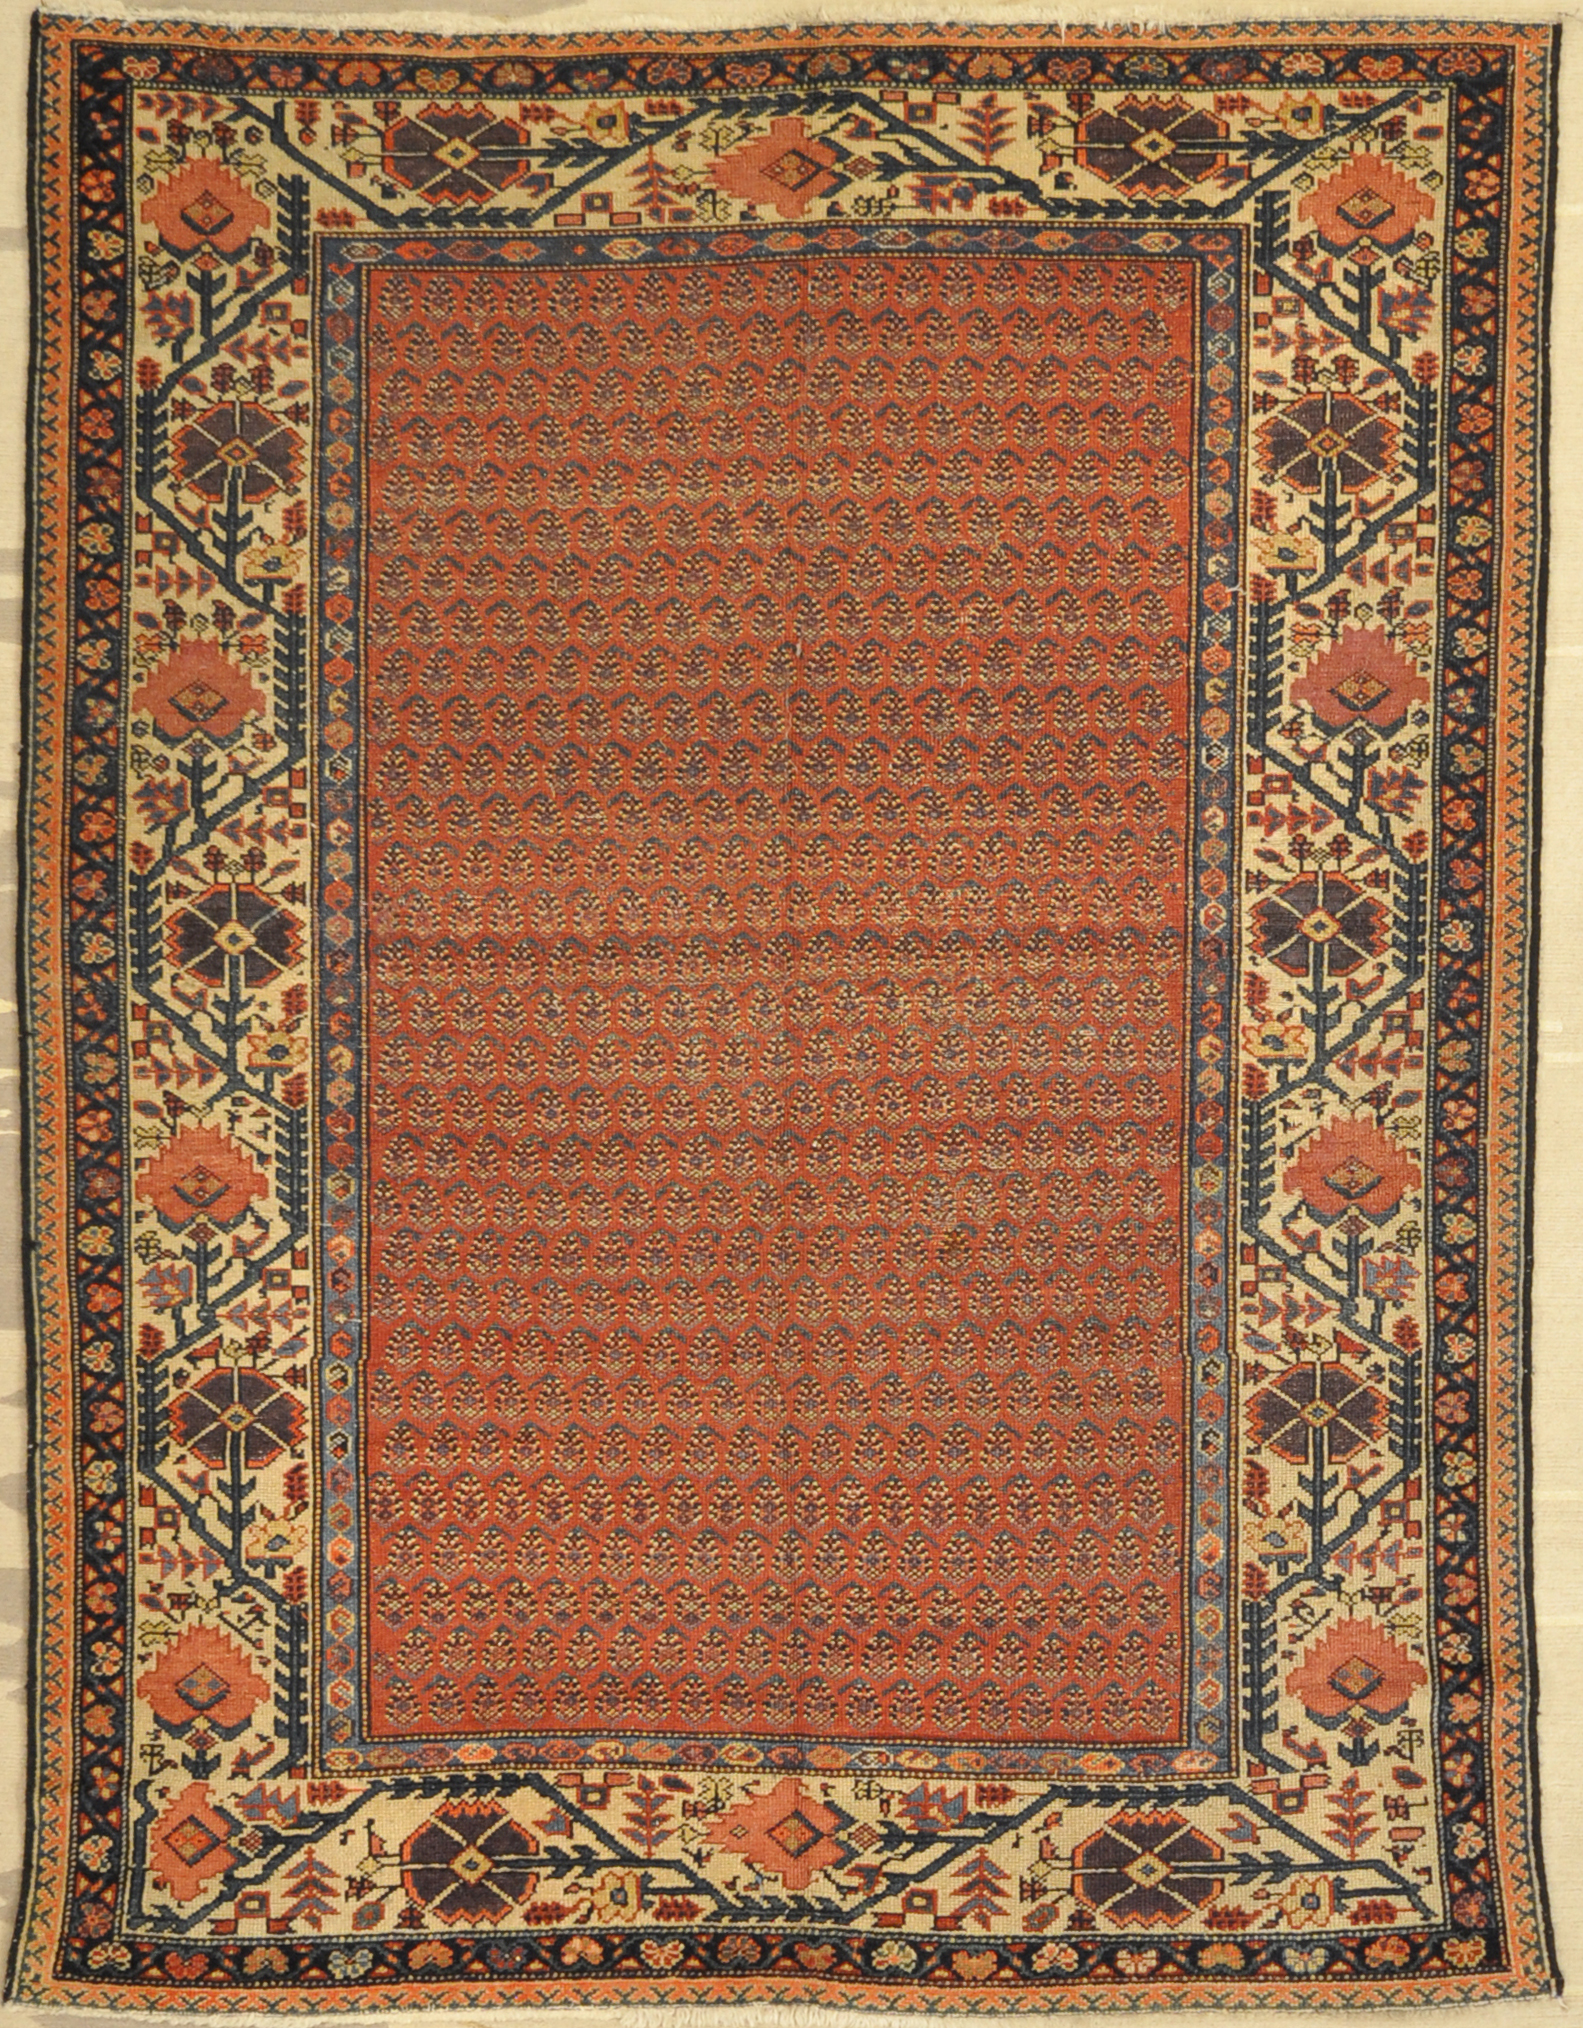 Antique Mishen Malayer Rug Santa Barbara Design center